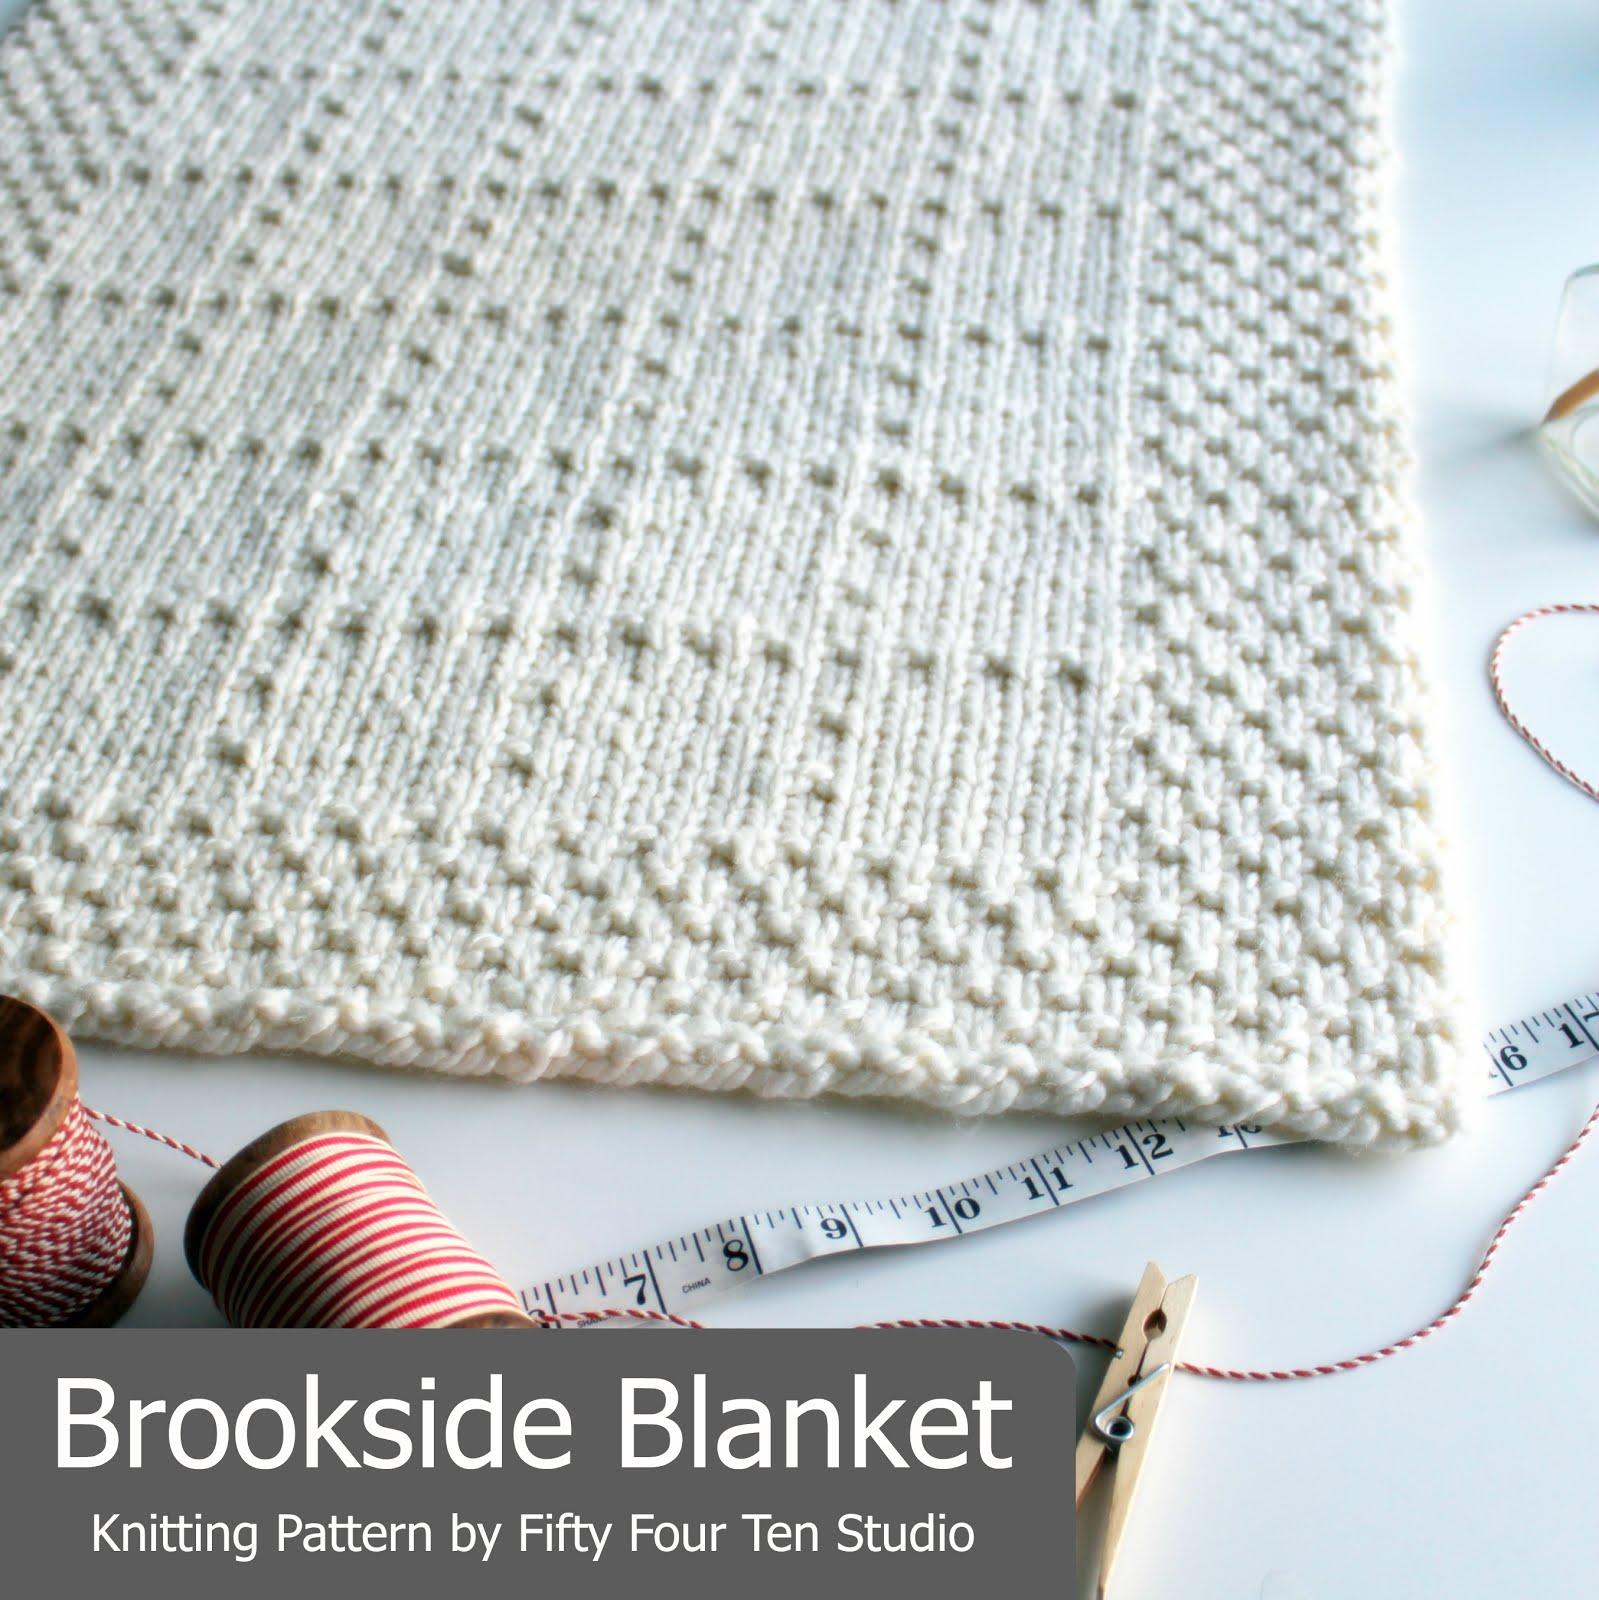 Brookside Blanket